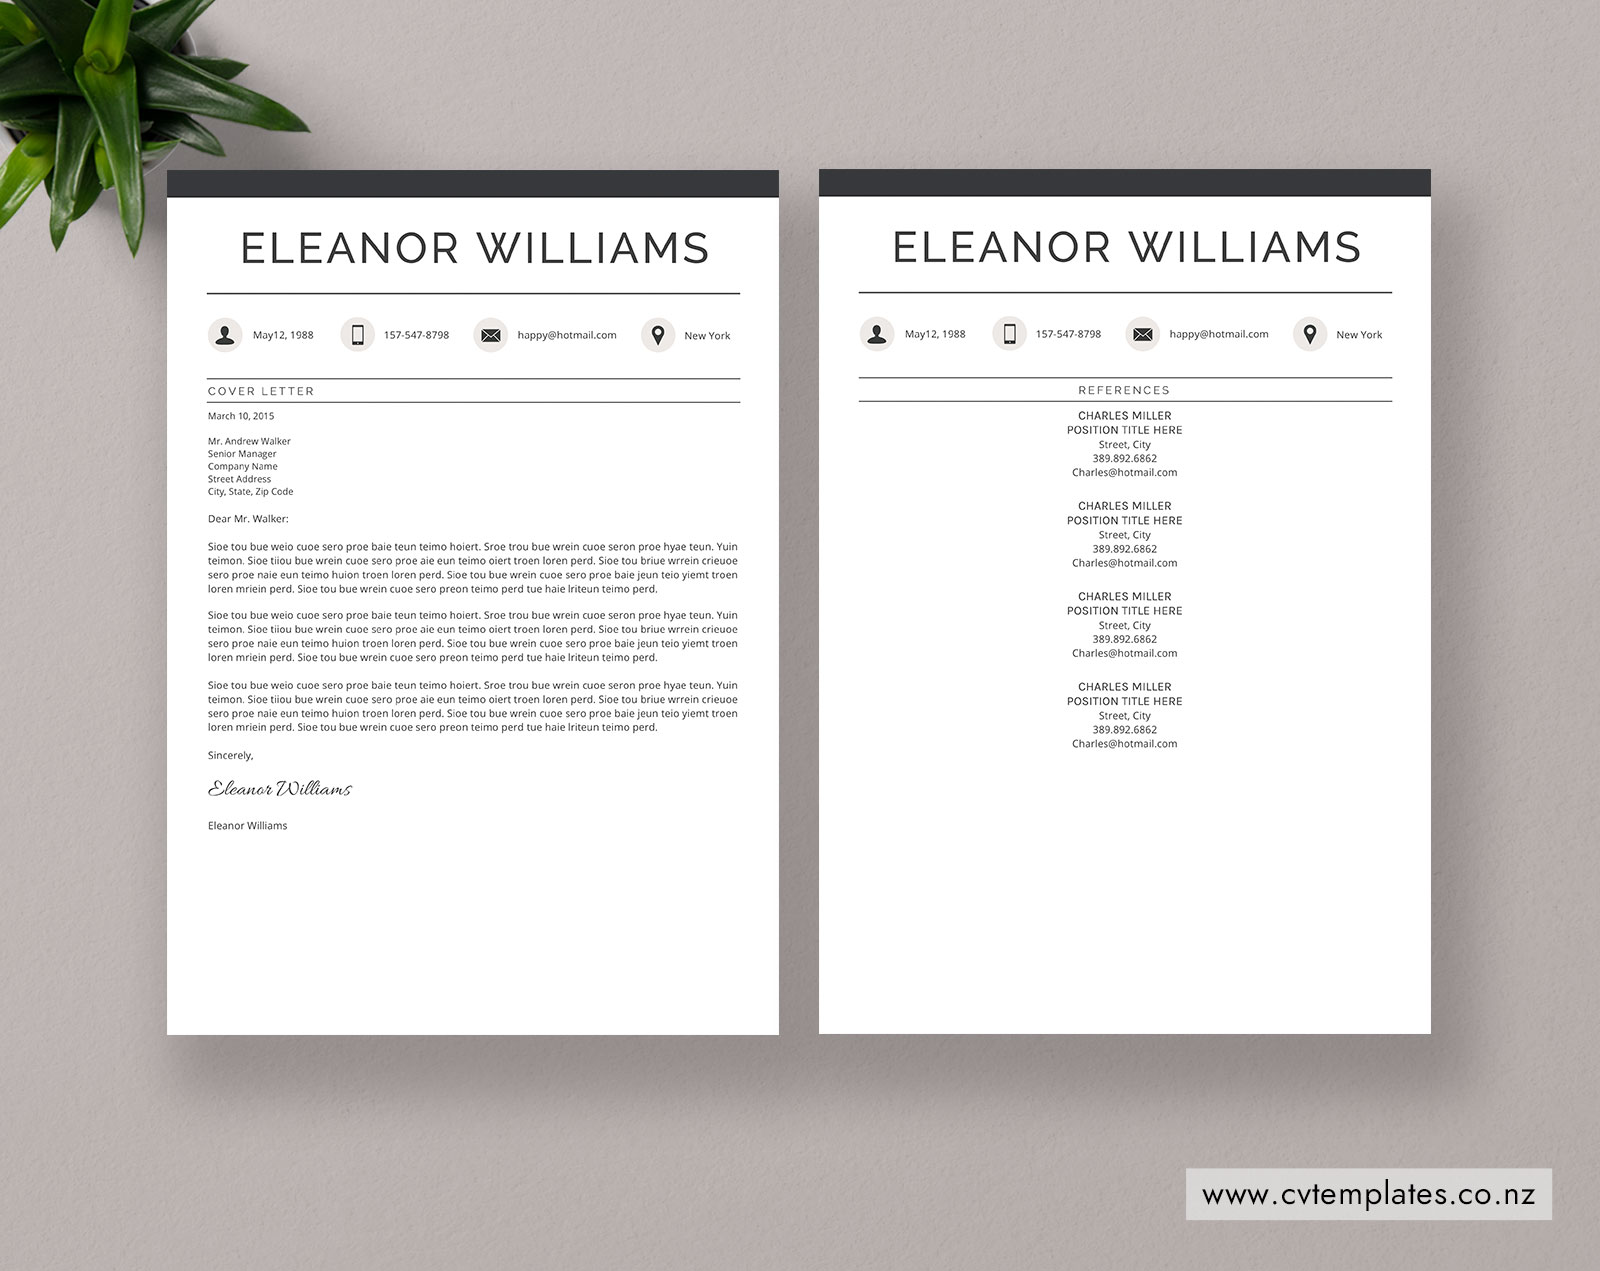 Cv Template For Ms Word Curriculum Vitae Simple Cv Template Cover Letter References 1 2 And 3 Page Resume Creative Resume Editable Resume Modern Resume Instant Download Cvtemplates Co Nz